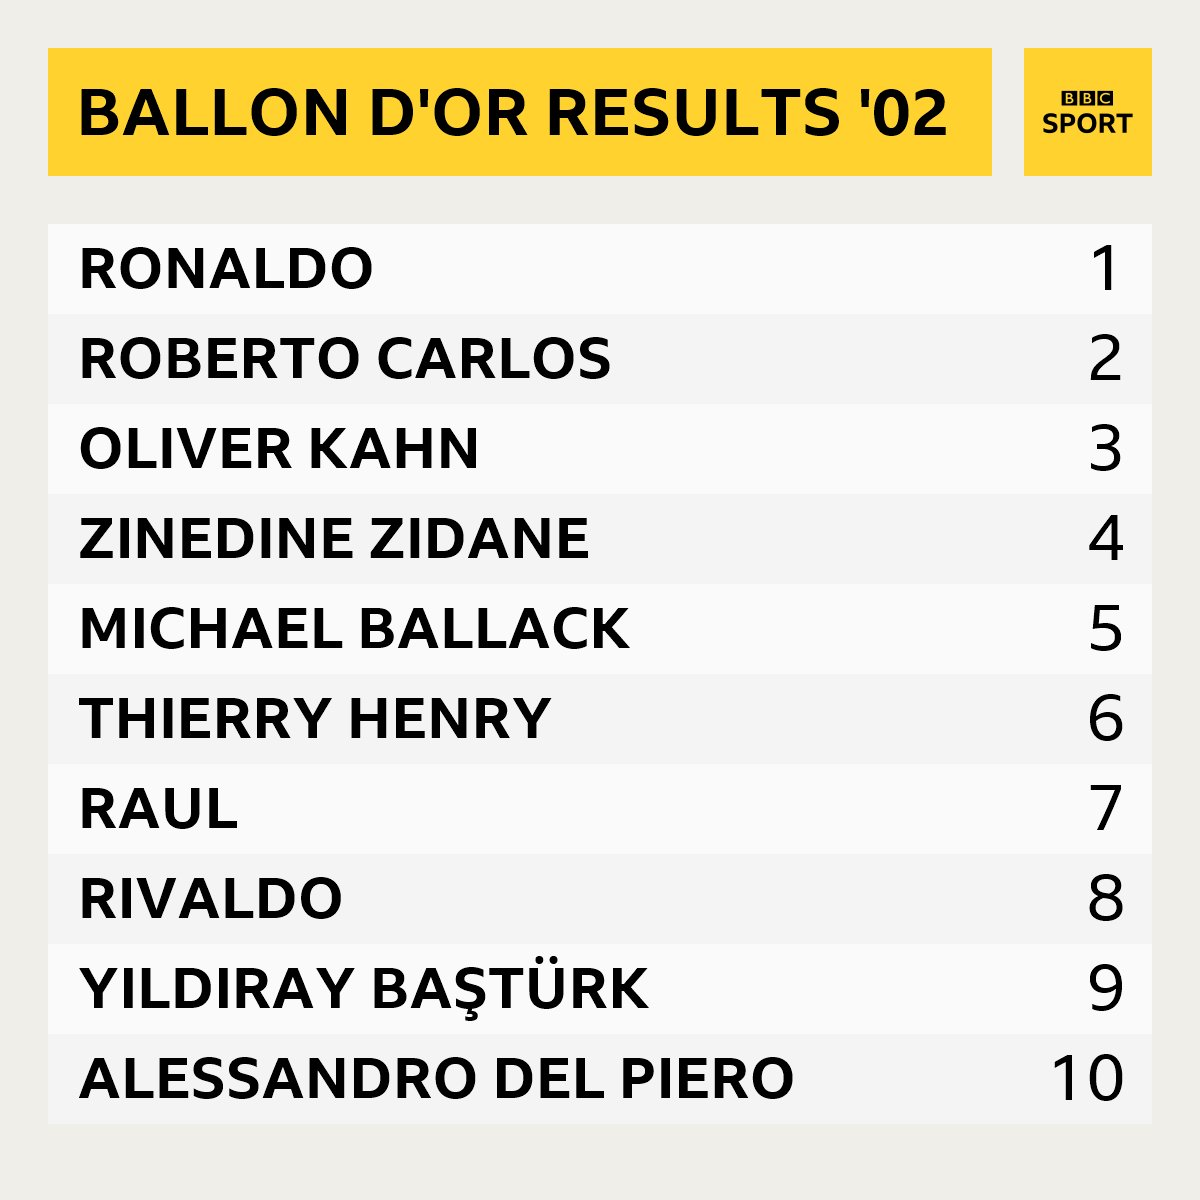 ️🥇 Ronaldo 🥈 Roberto Carlos 🥉 Oliver Kahn  What a year 2002 was in the race for the Ballon d'Or 🏆